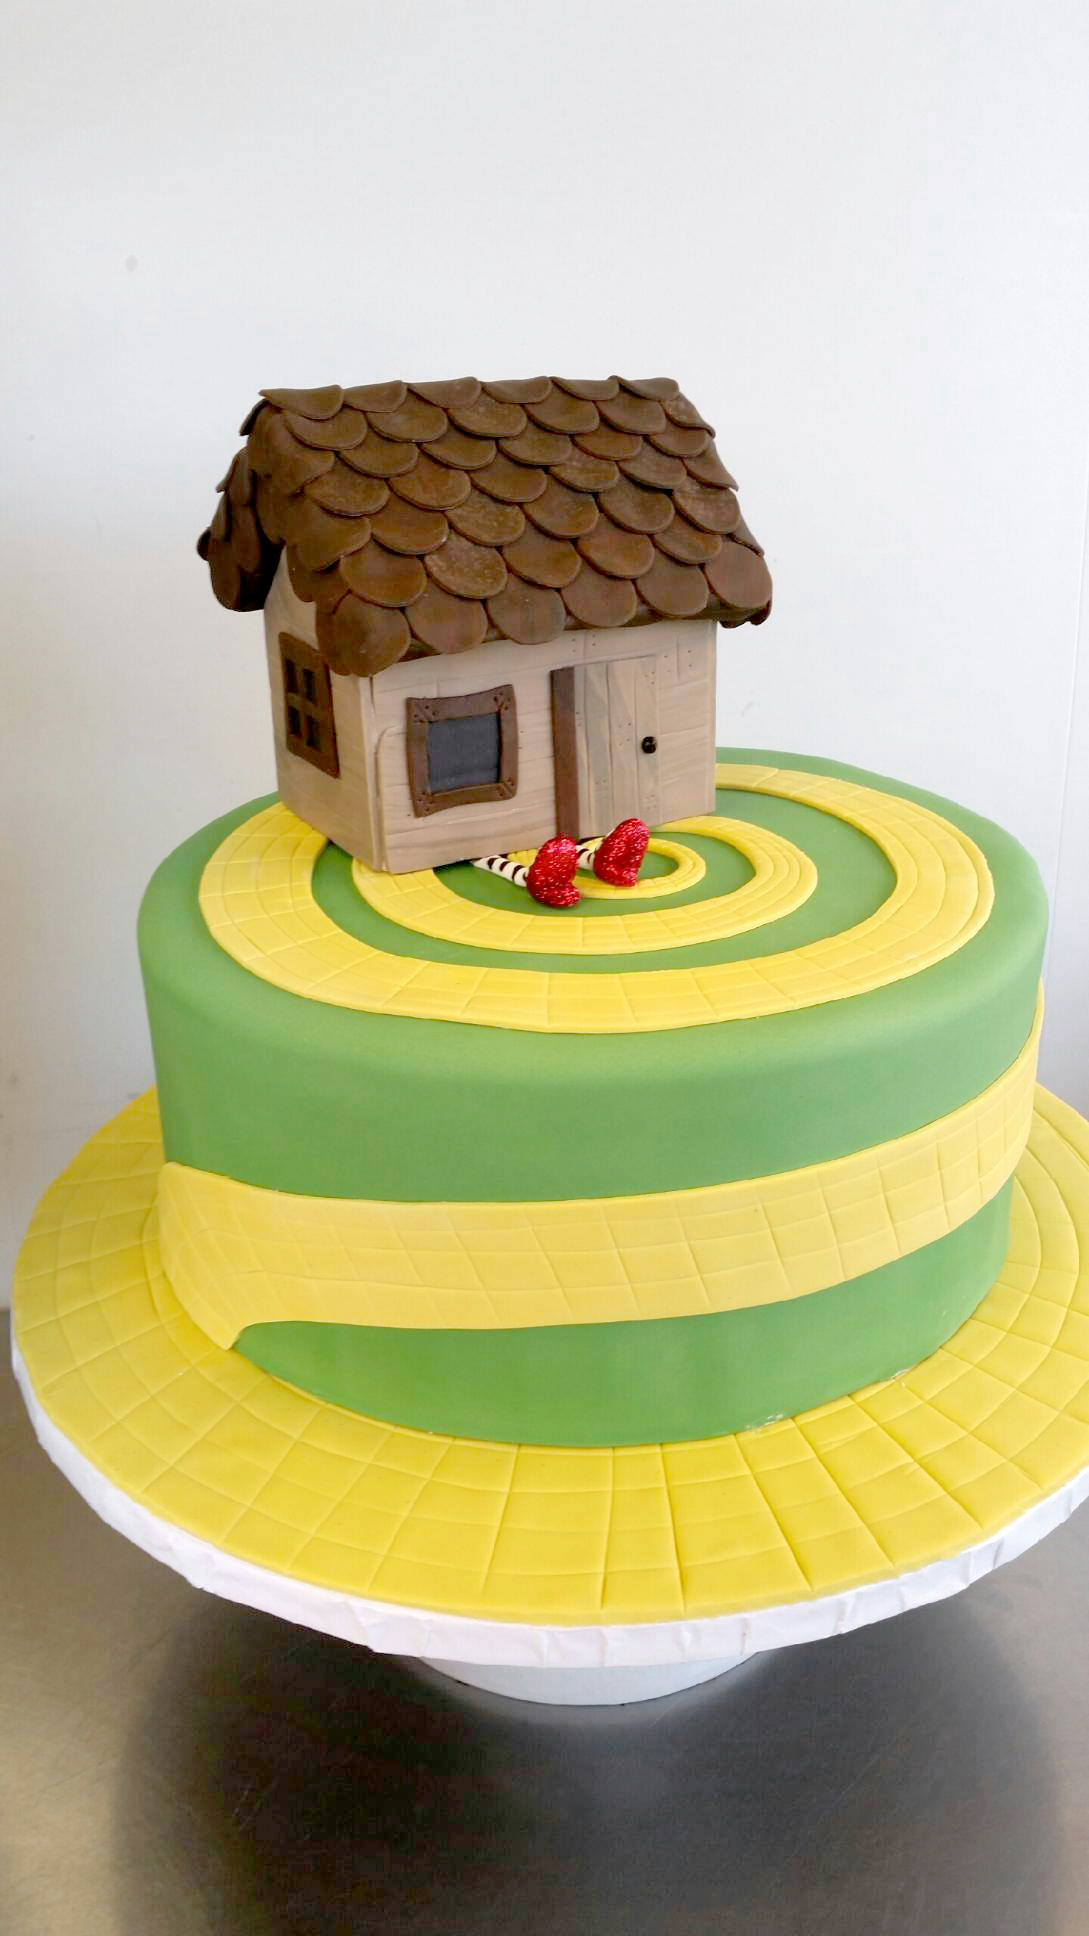 wizard of oz cake.jpg